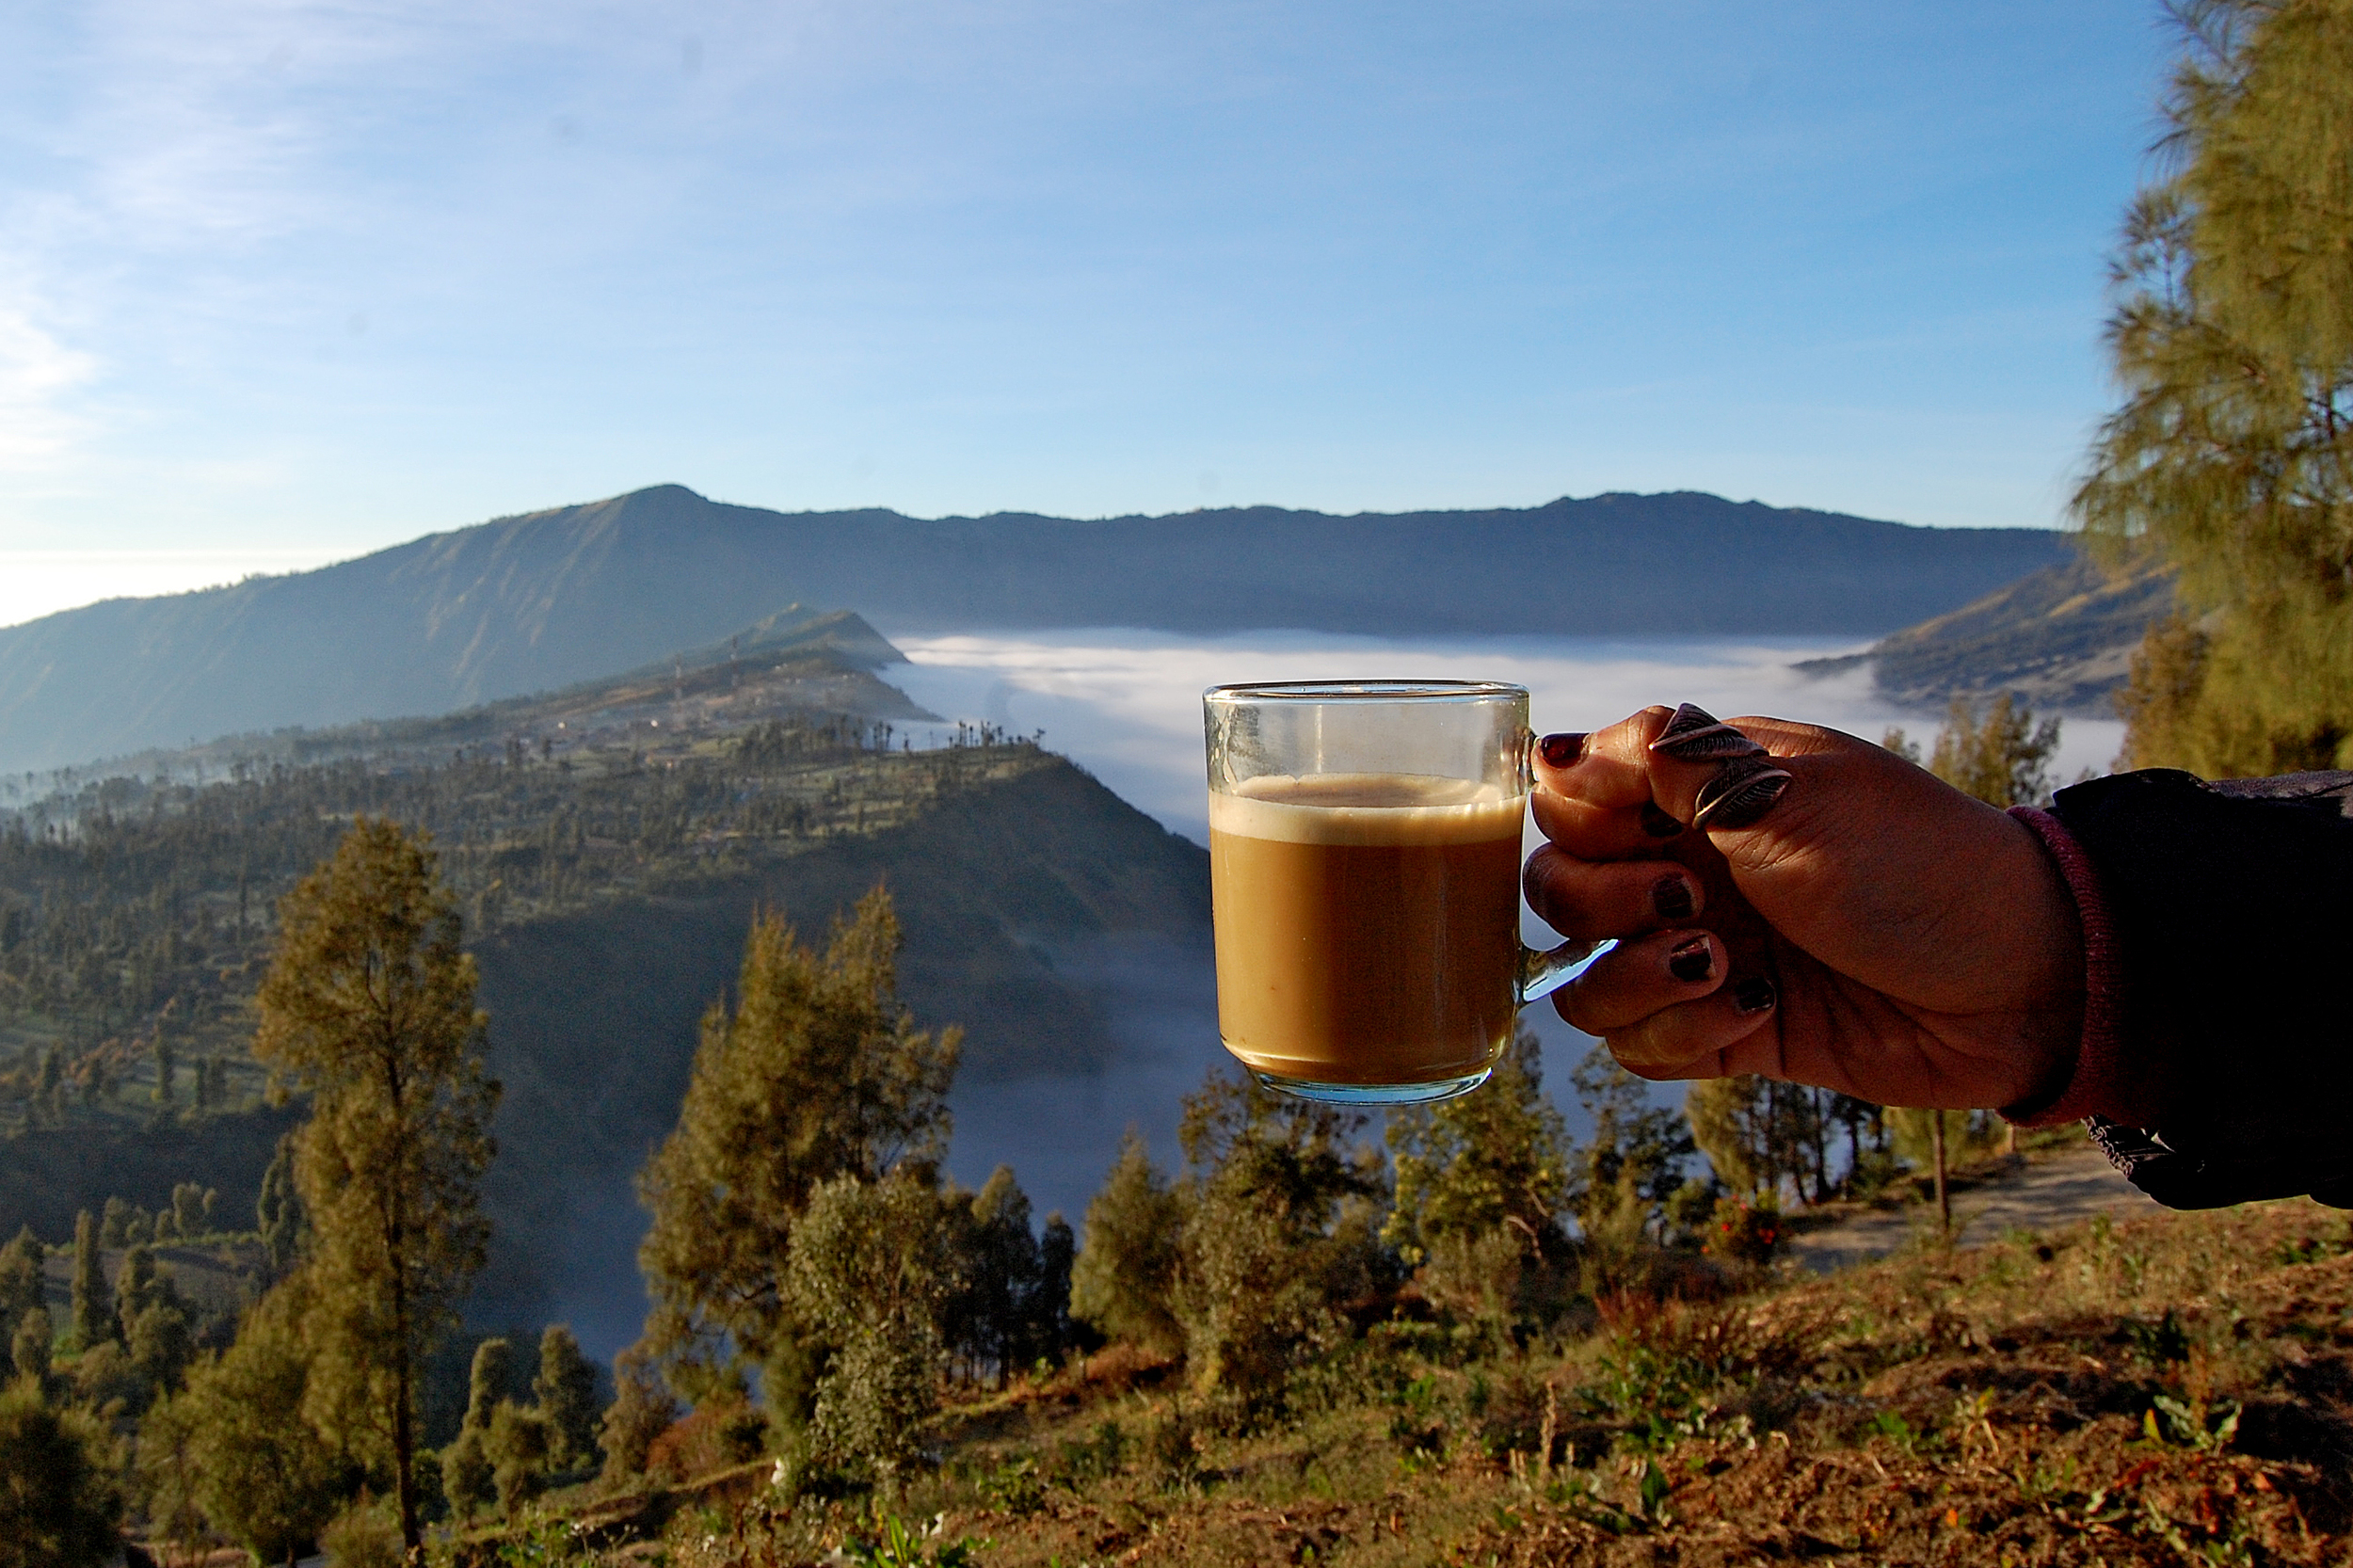 A cup of coffee in front of mountain views through the clouds